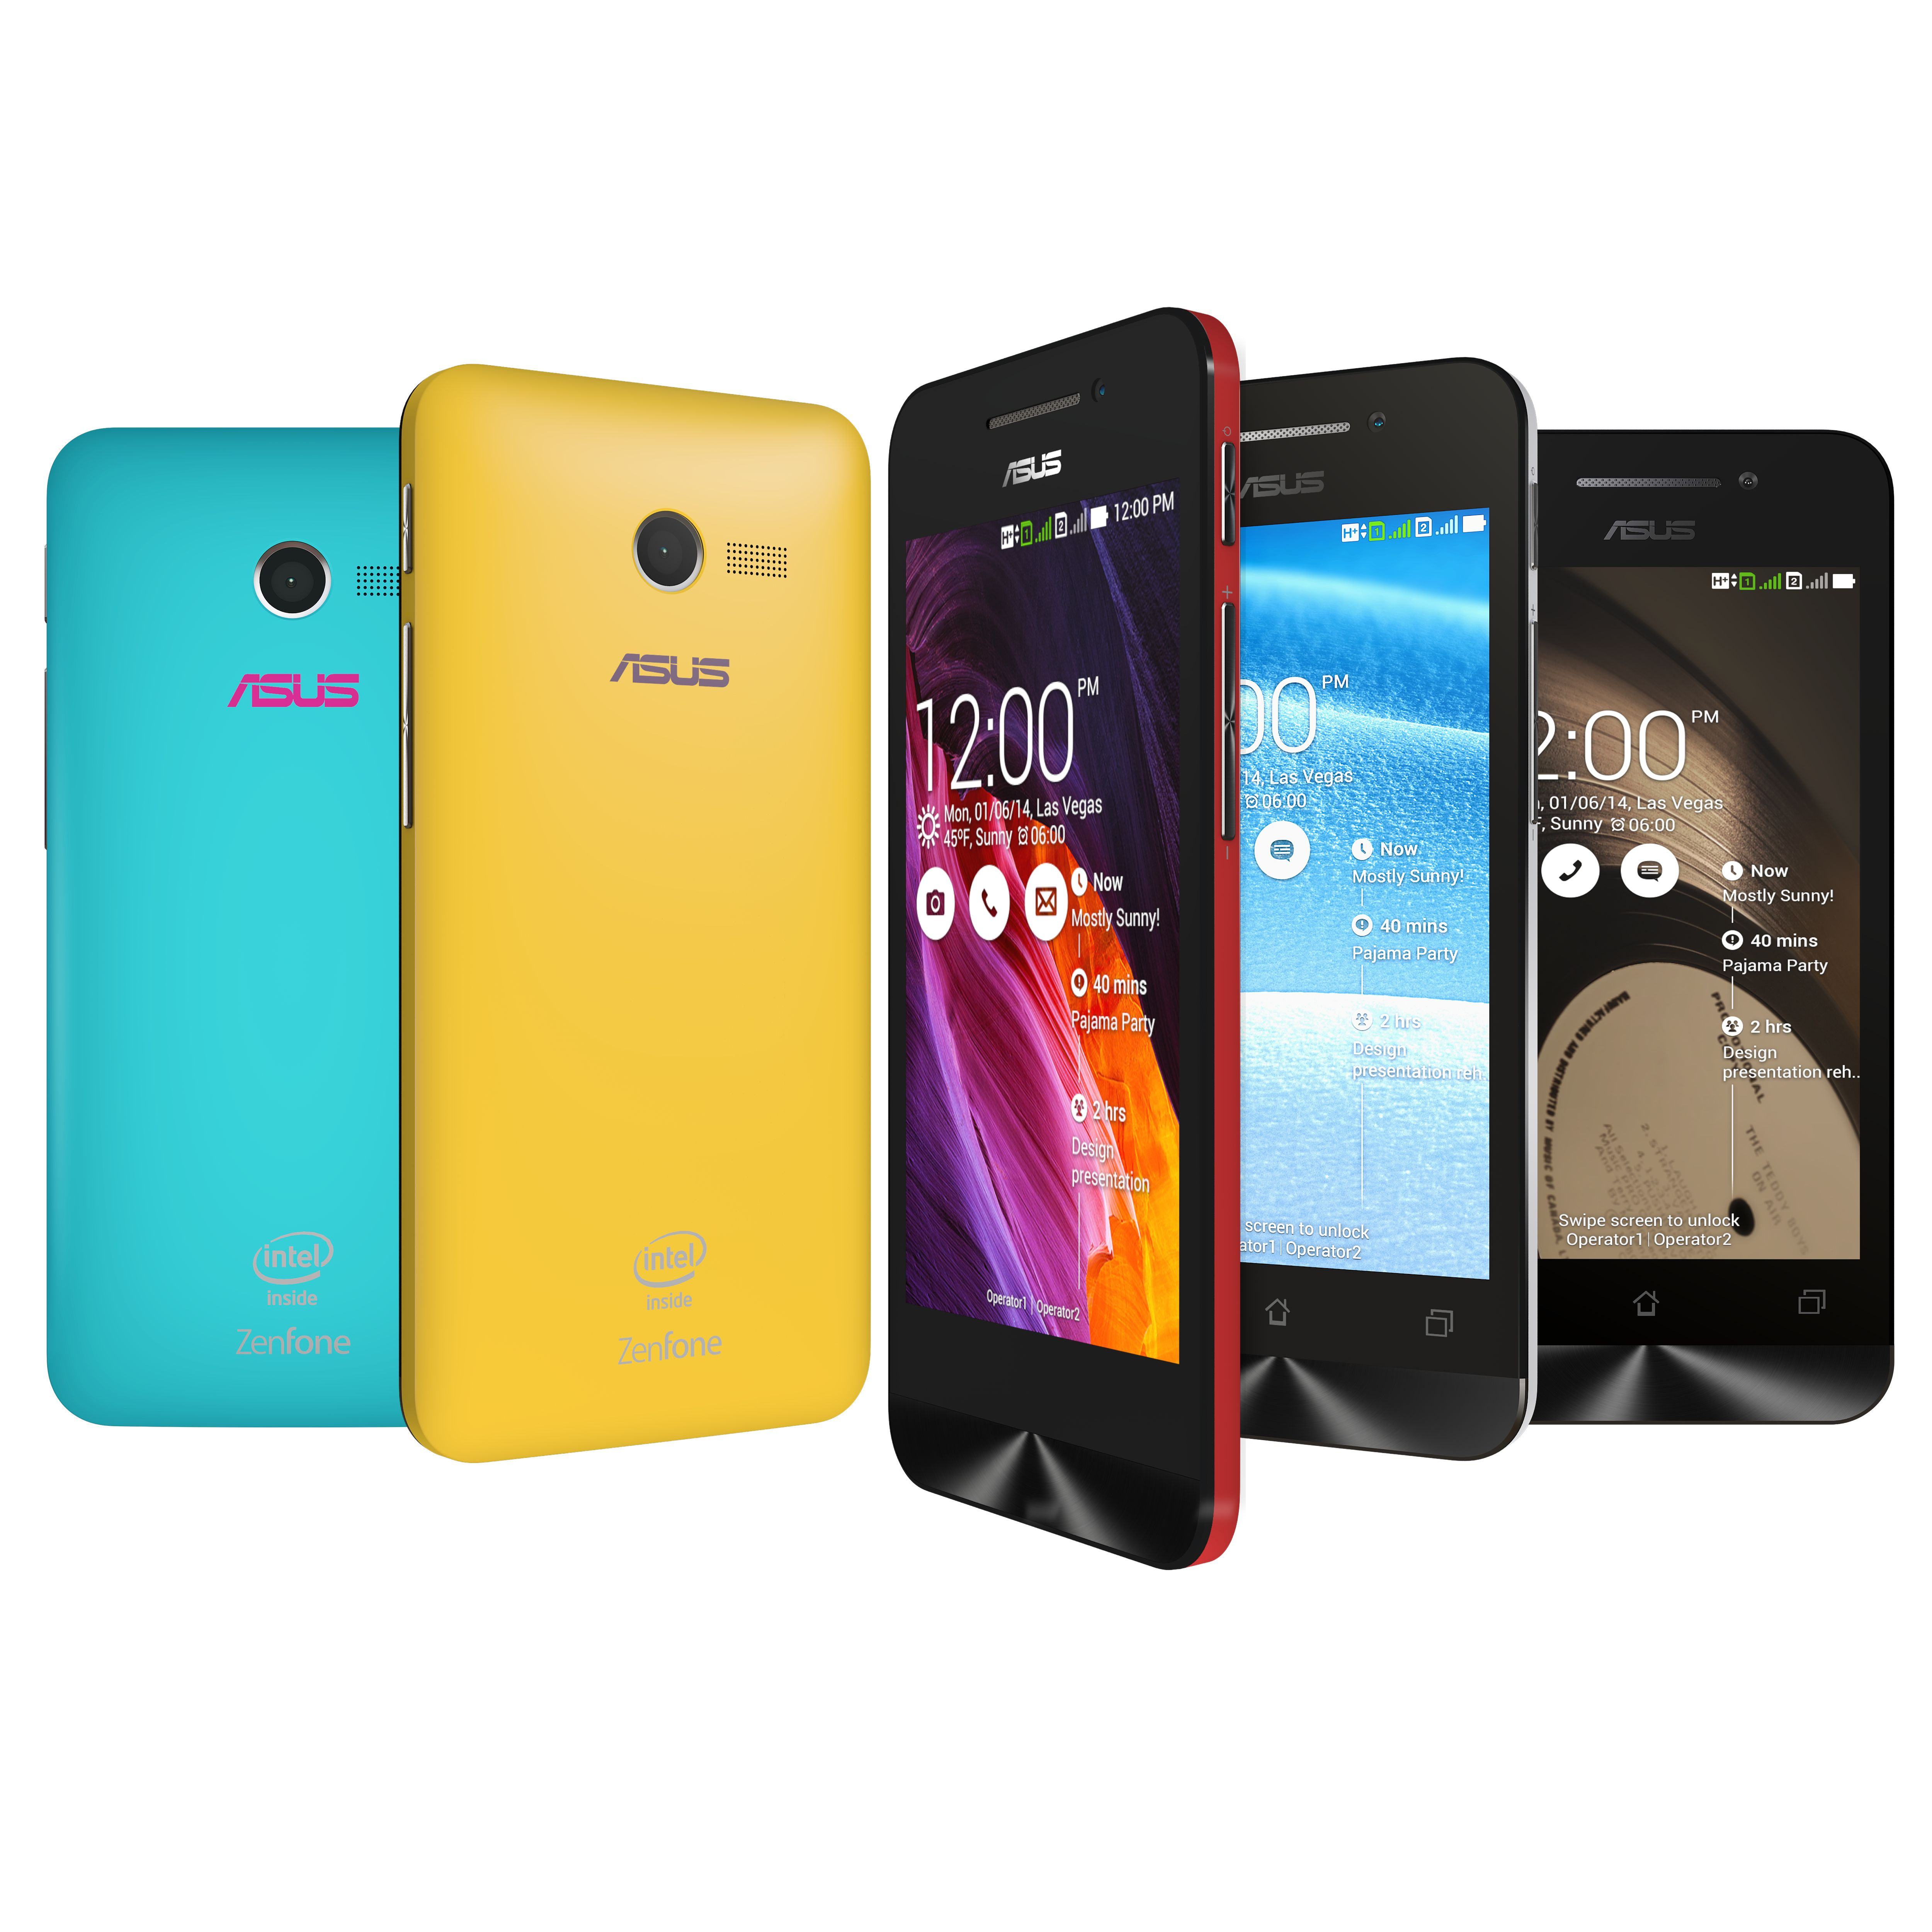 Singapore Users Get Their Pick Of Budget And Pricey Androids Hp Xiaomi Redmi 2 Ram 1gb Rom 8gb 4g Lte Techgoondu